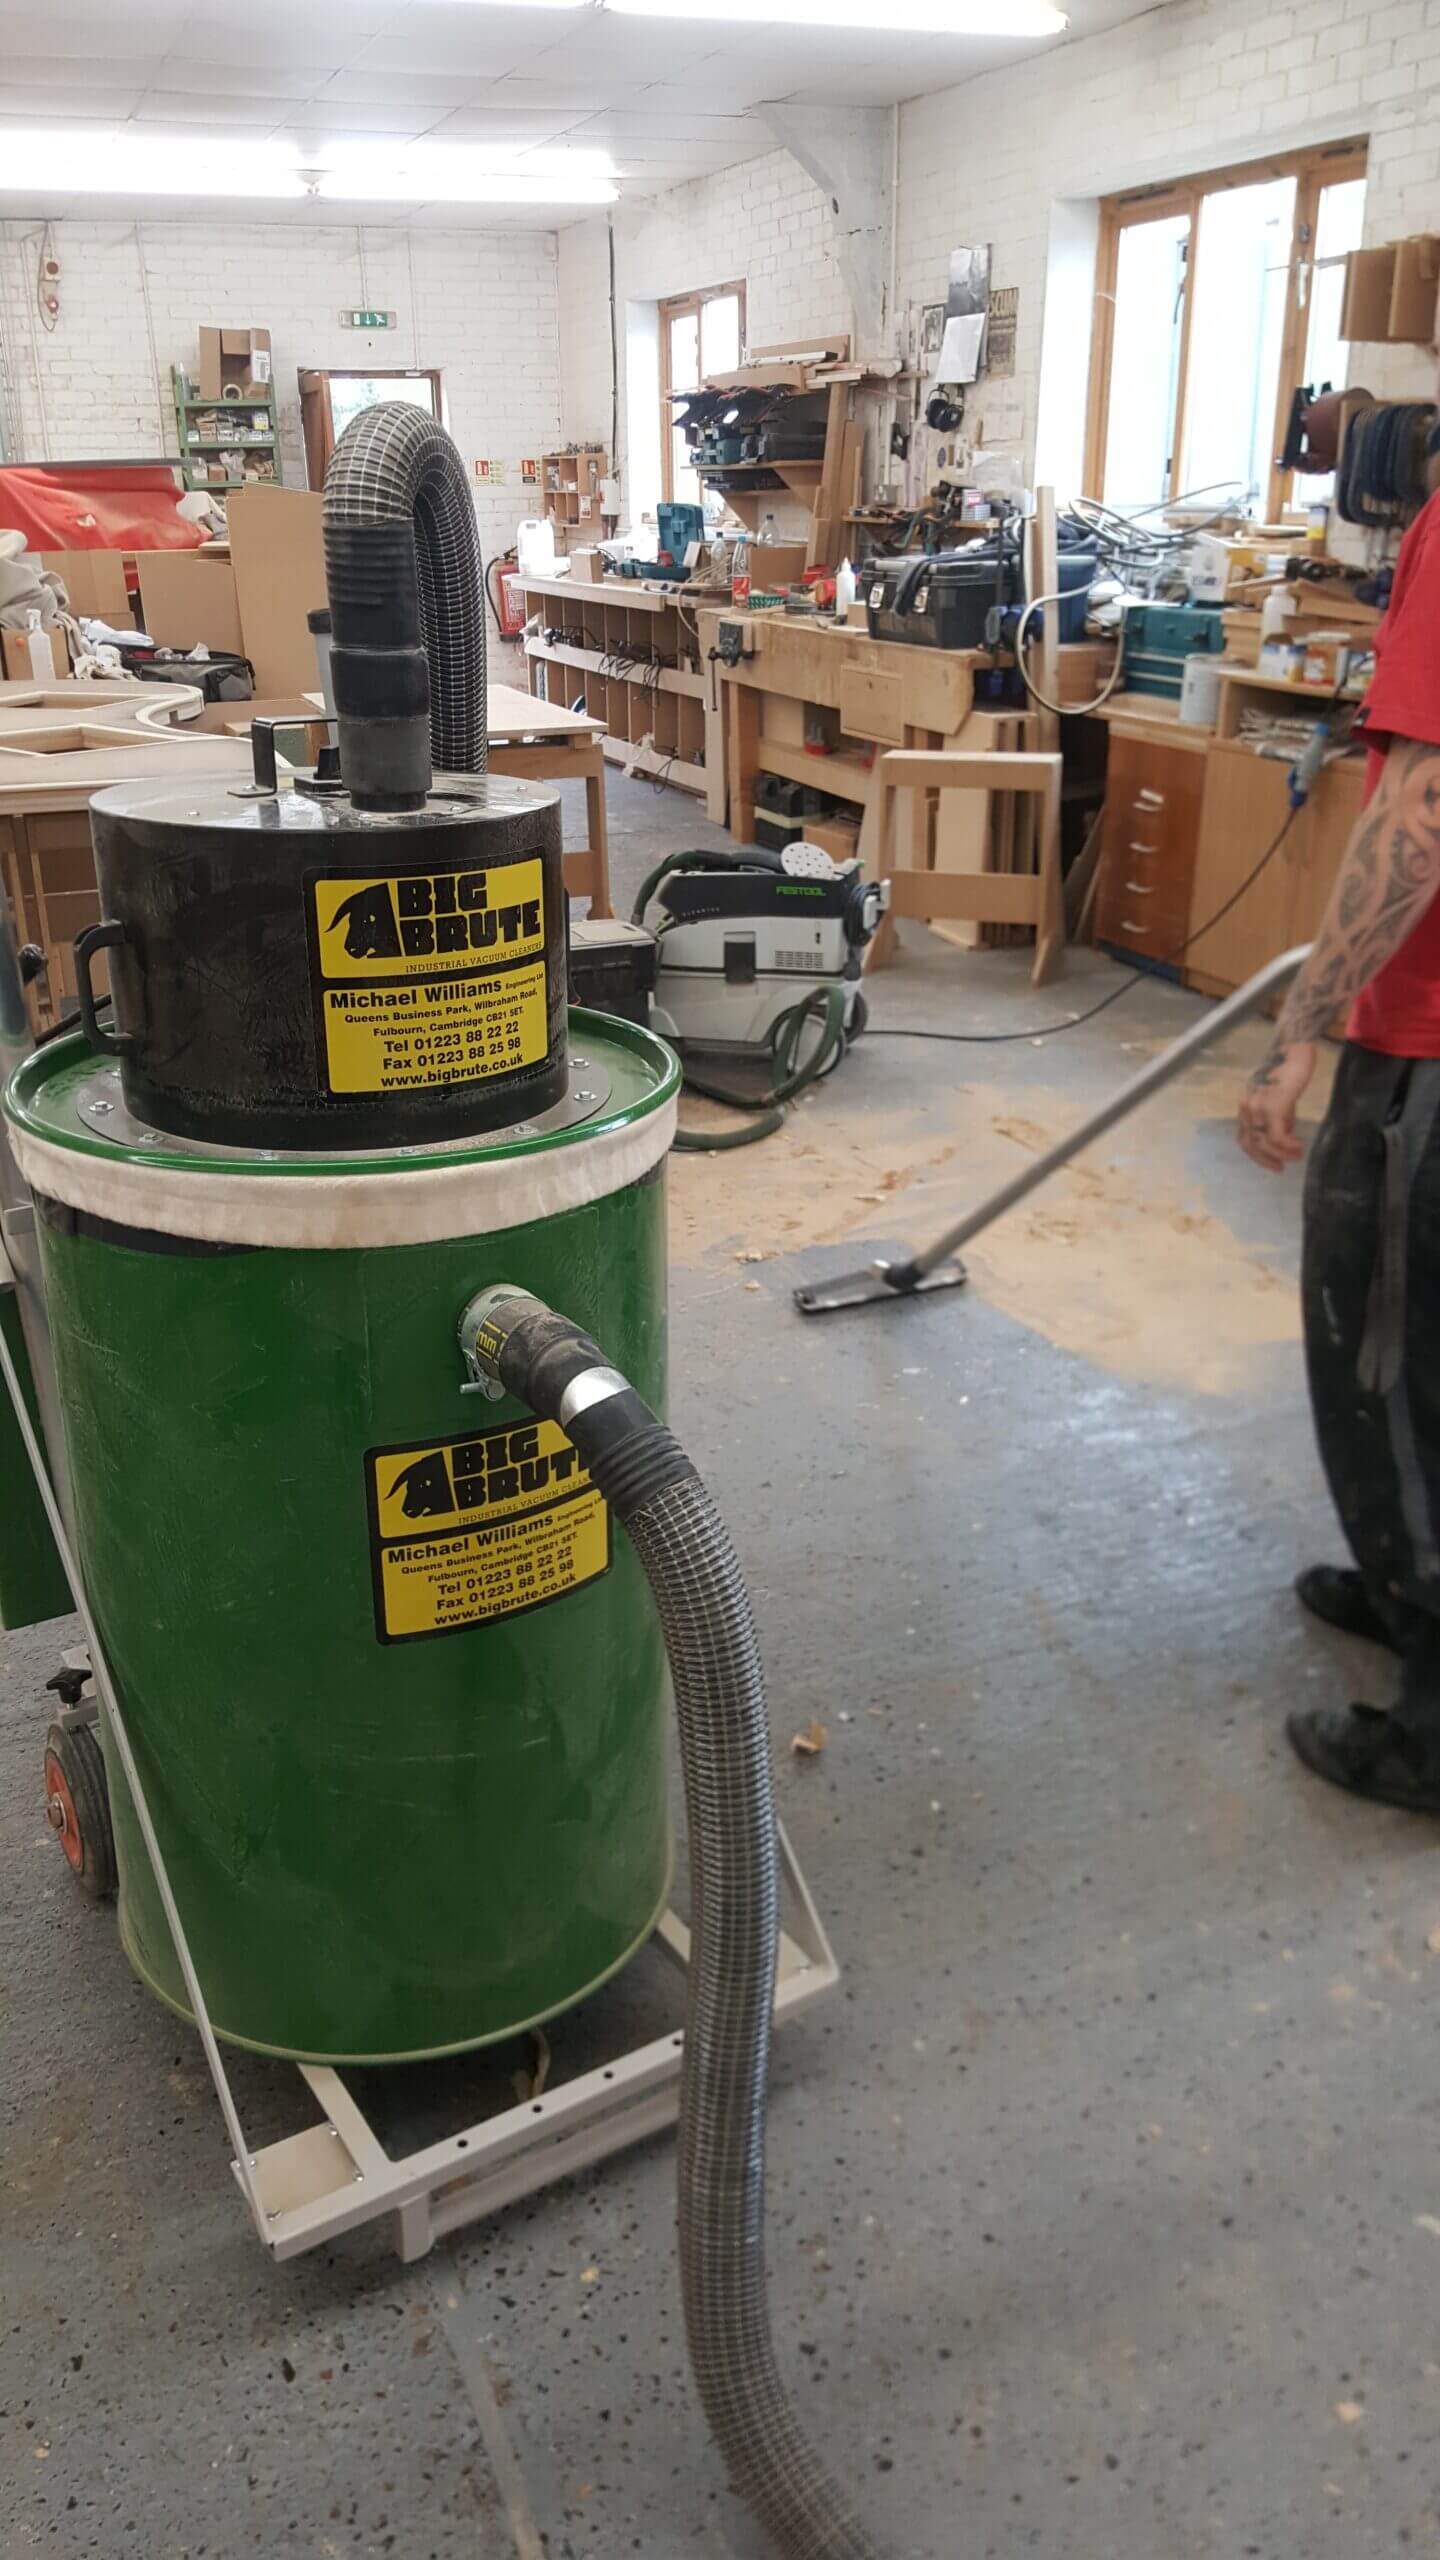 Knotty Ash Woodworking Cleaning Wood Dust With A Big Brute HEPA Industrial Vacuum Cleaner